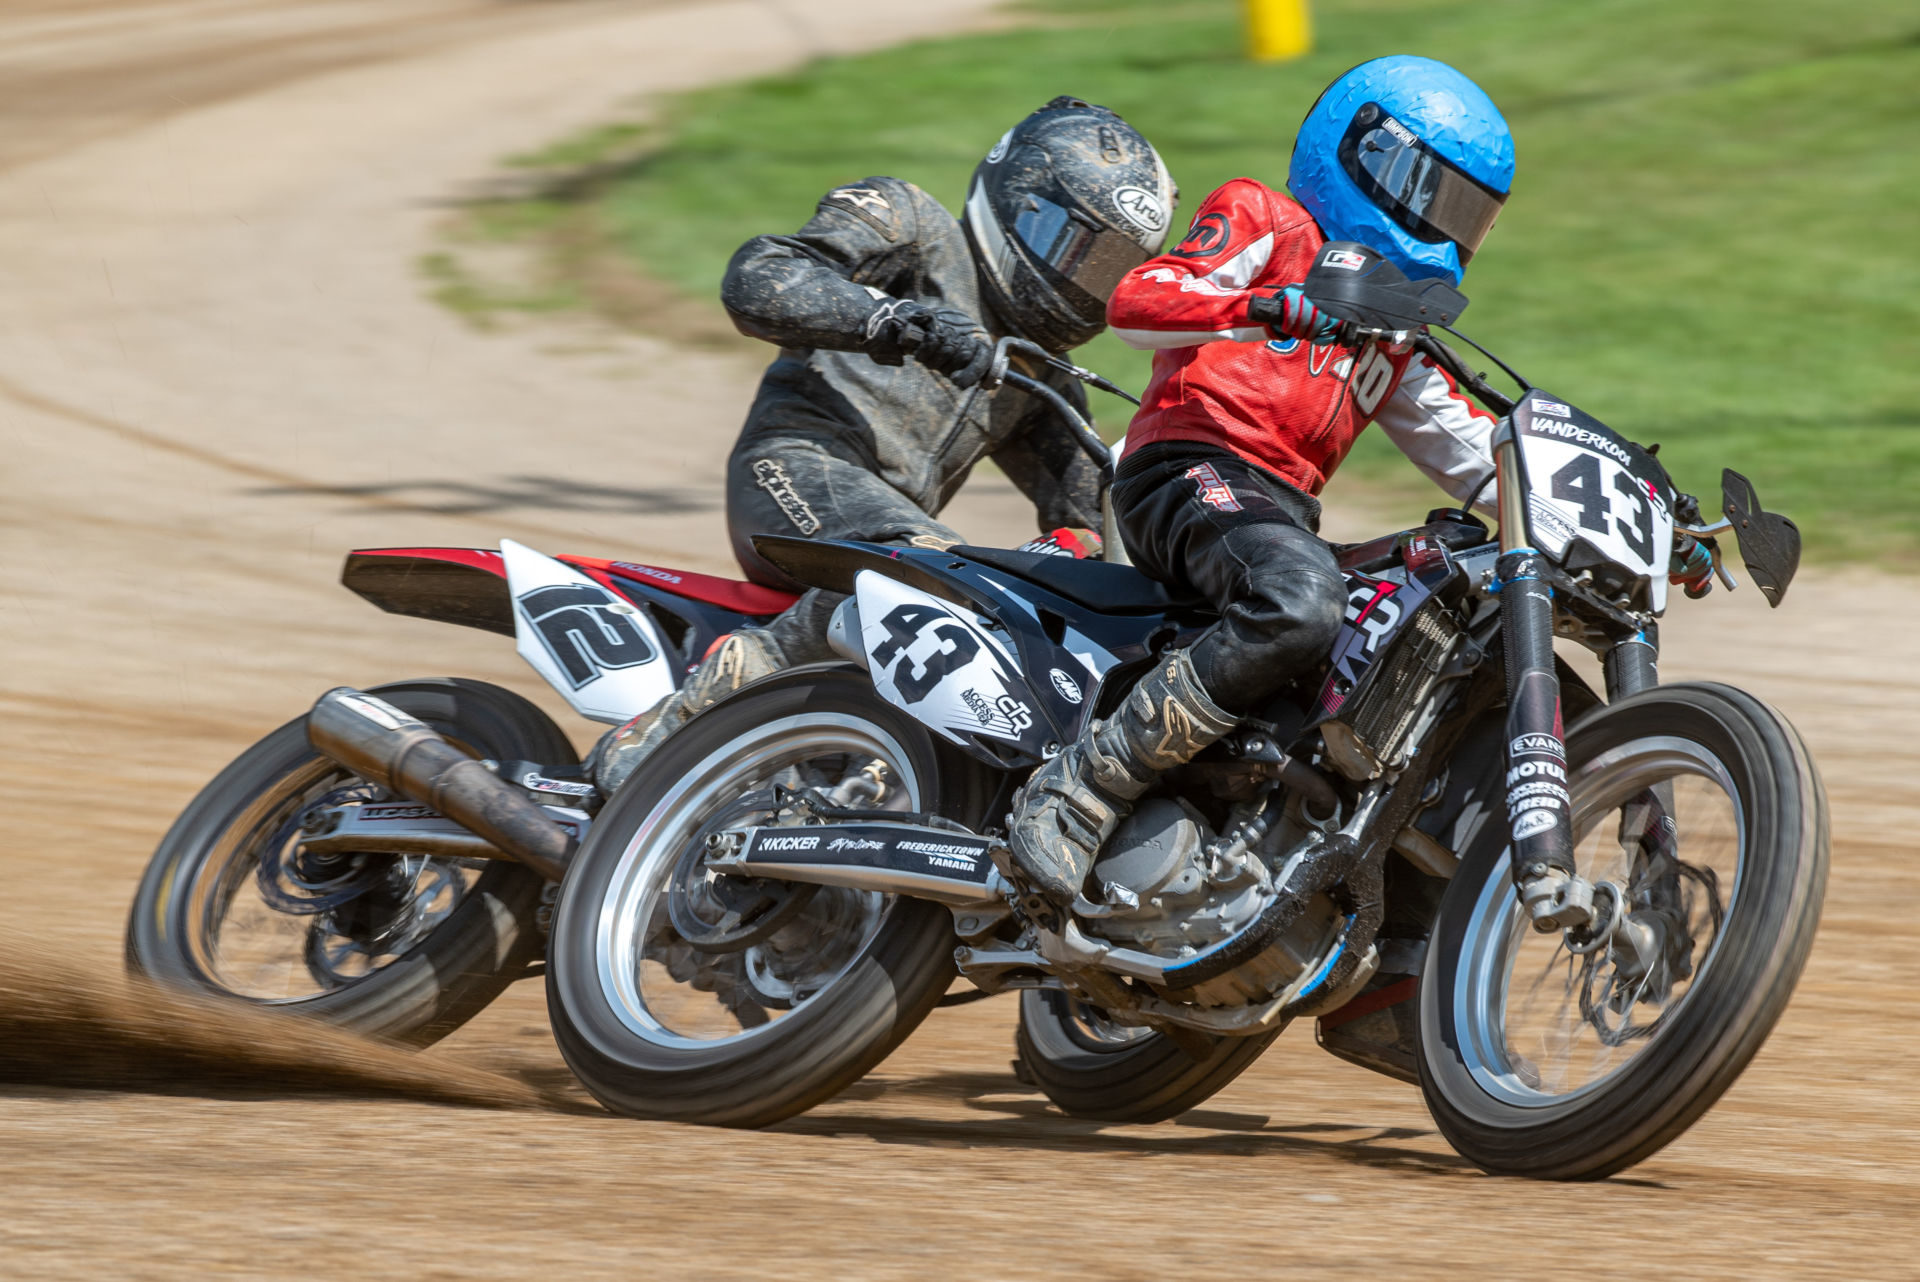 Action from the 2019 AMA Flat Track Grand Championship. Photo by Jen Muecke, courtesy of AMA.